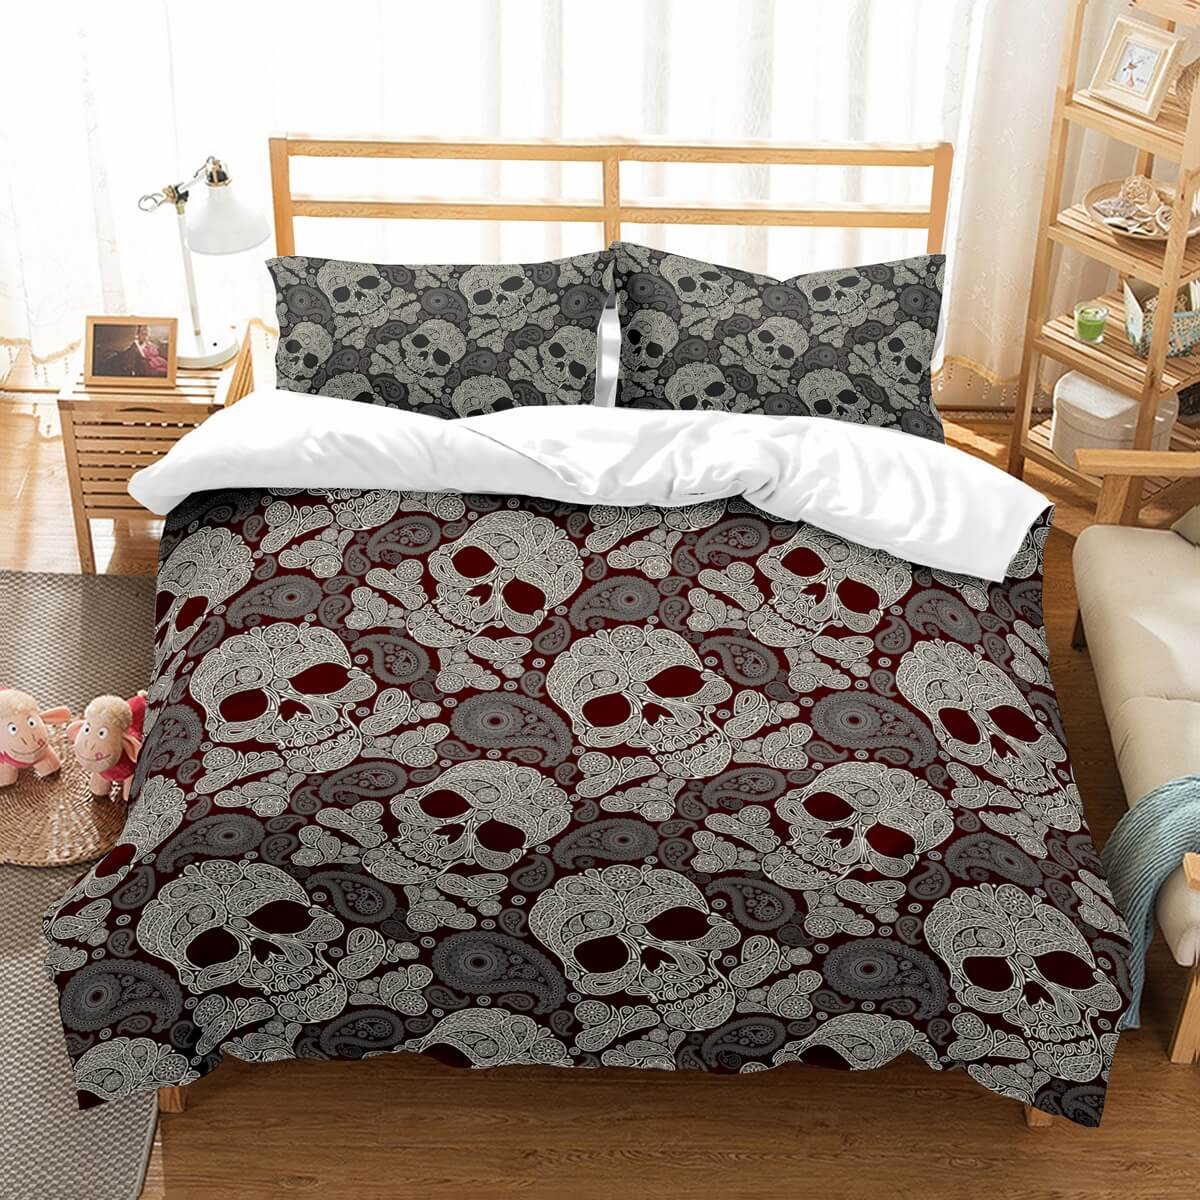 3D Customize Skull Bedding Set Duvet Cover Set Bedroom Set Bedlinen